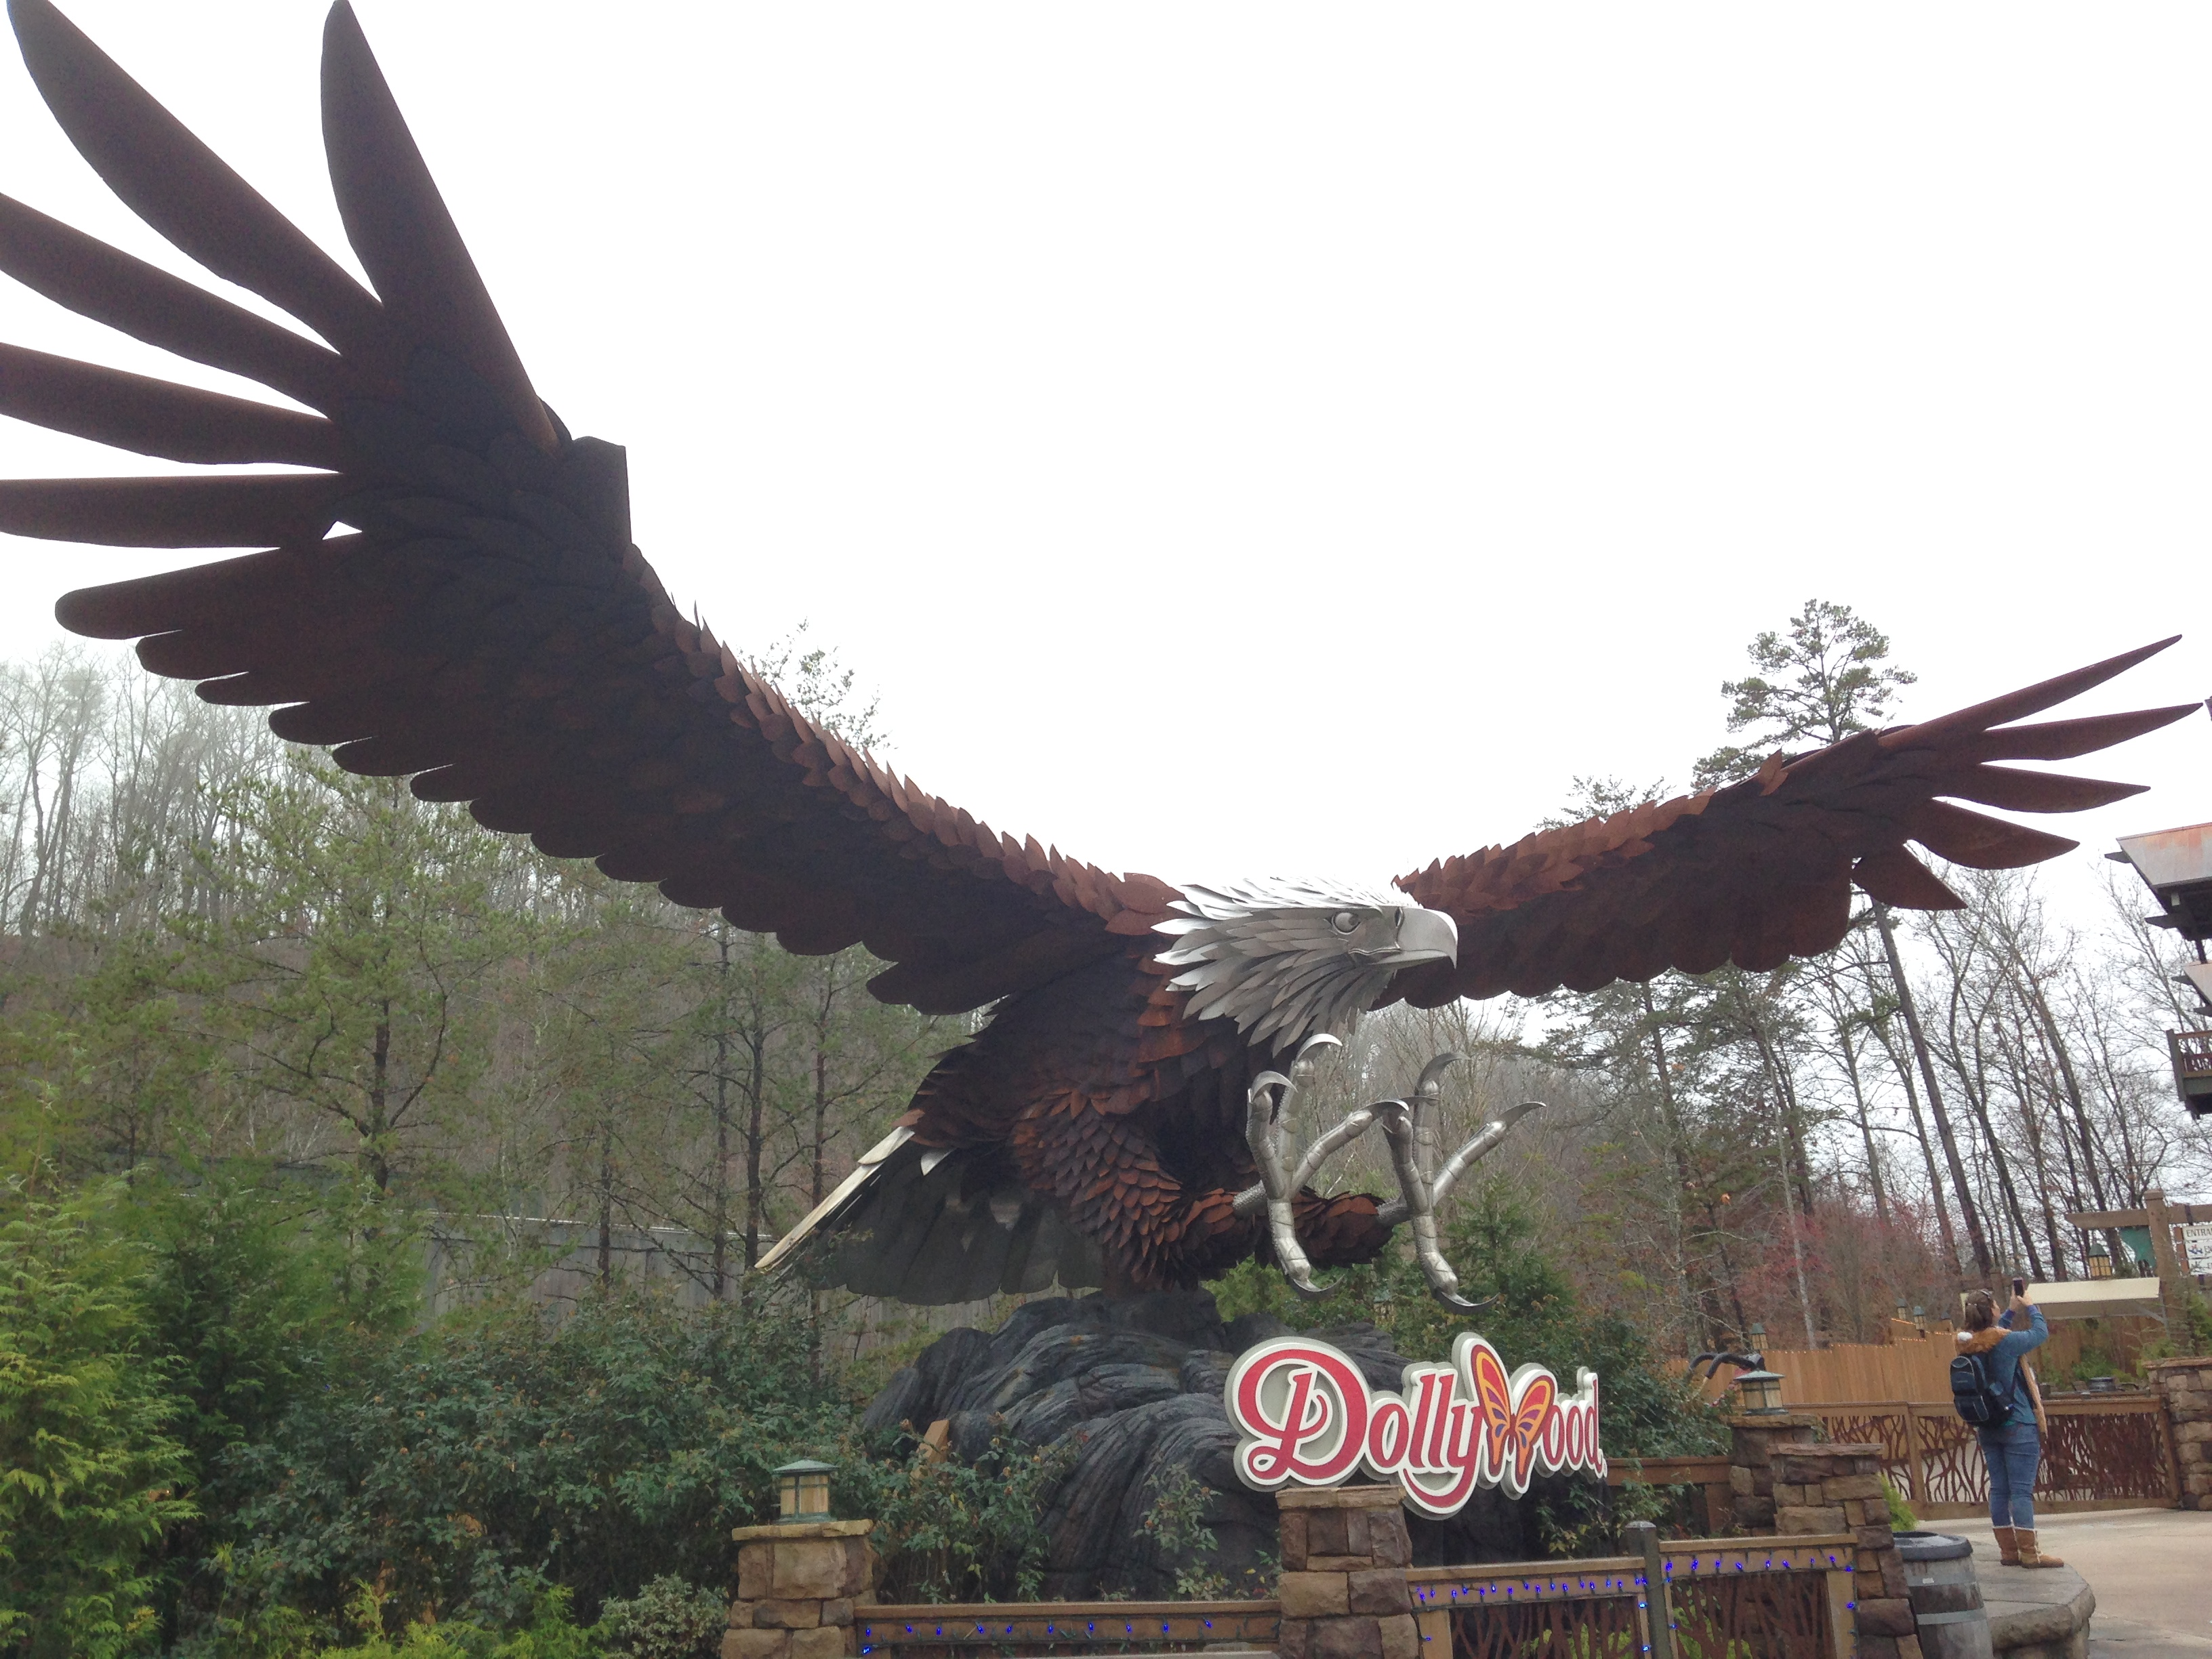 Dollywood - Wild Eagle - Pigeon Forge